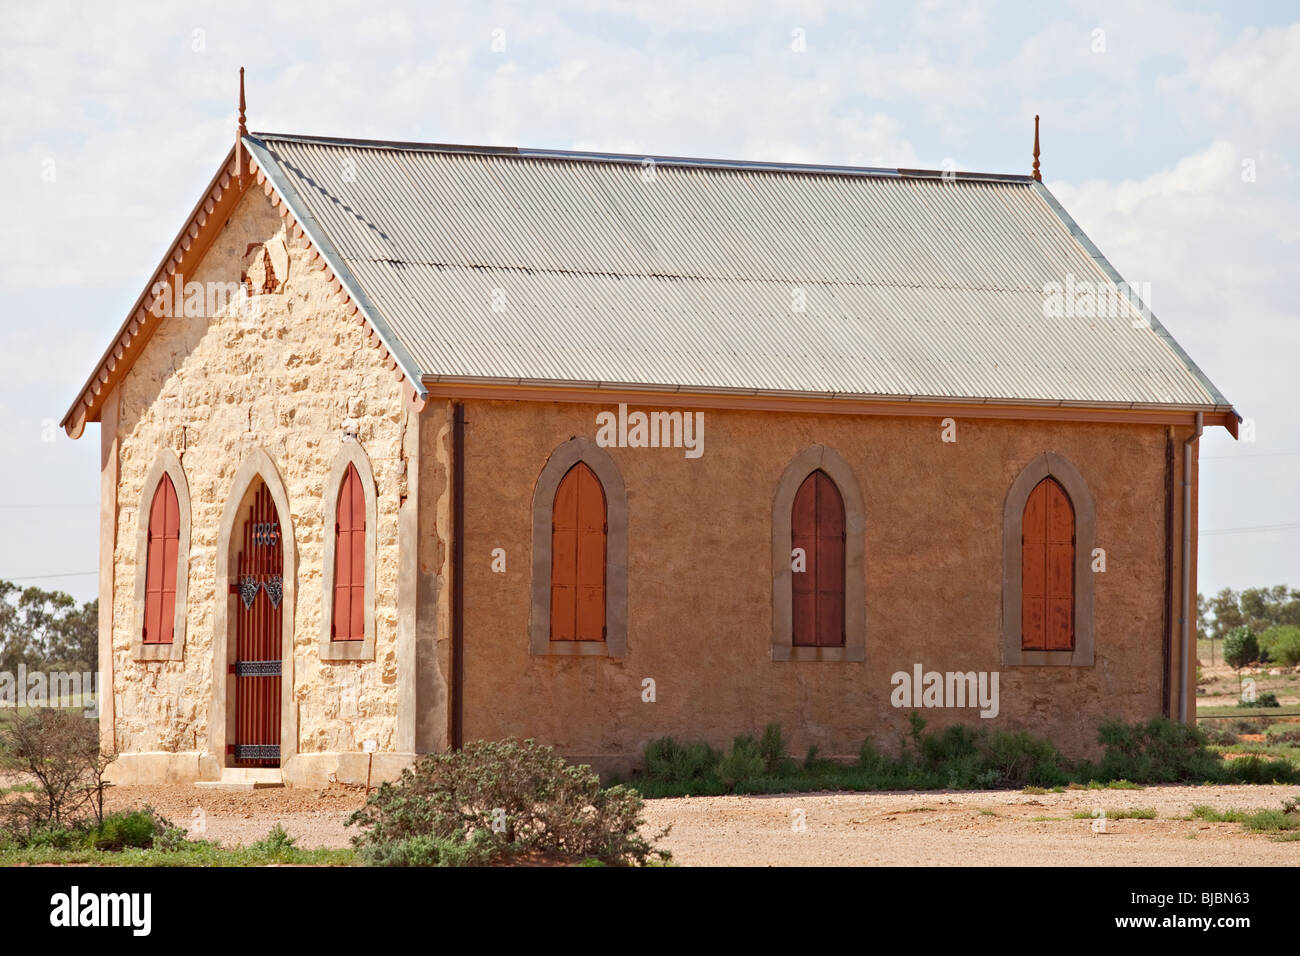 L'église méthodiste, Silverton près de Broken Hill, NSW Australie Outback Photo Stock